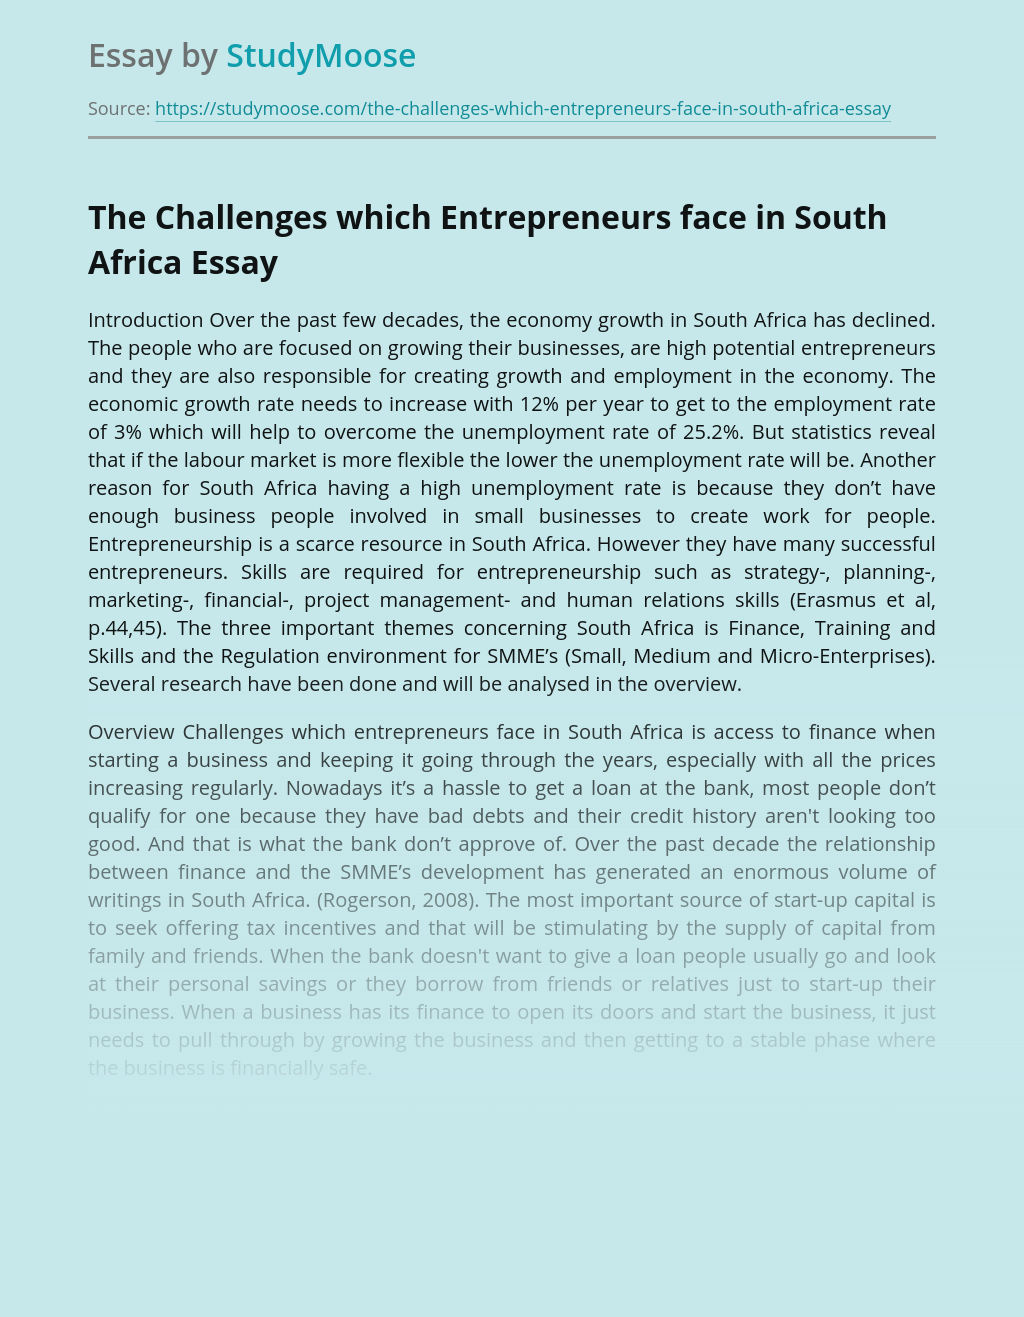 The Challenges which Entrepreneurs face in South Africa